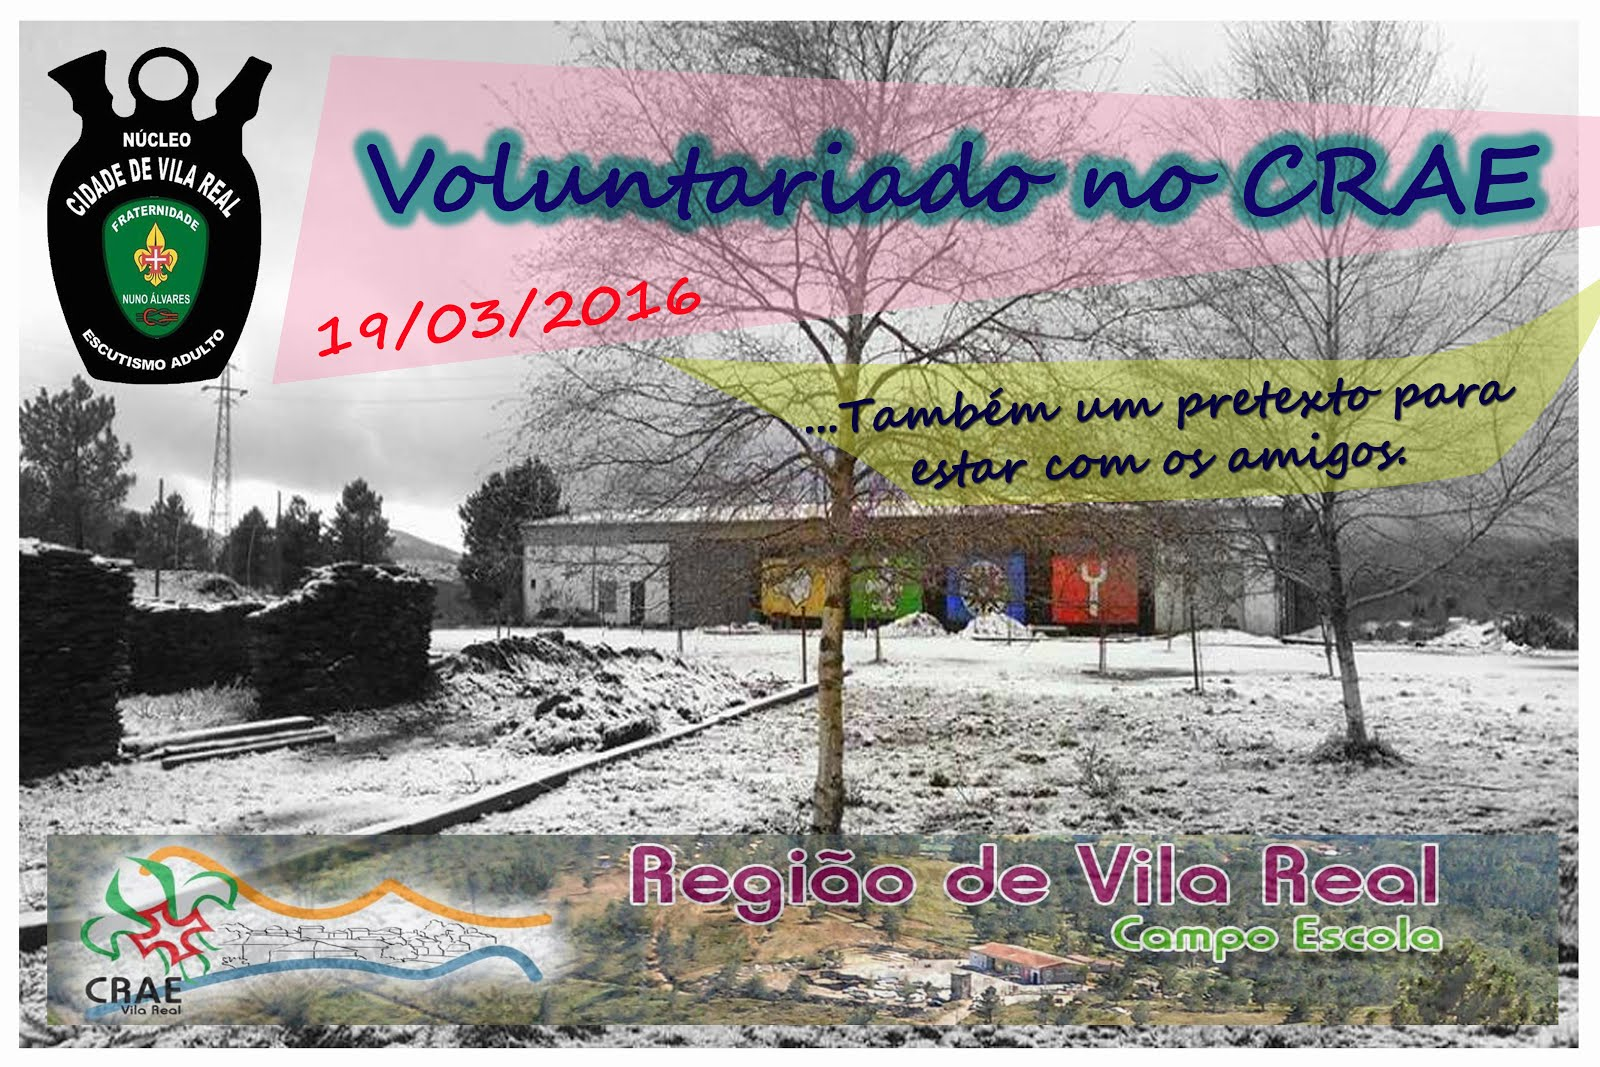 Voluntariado no CRAE